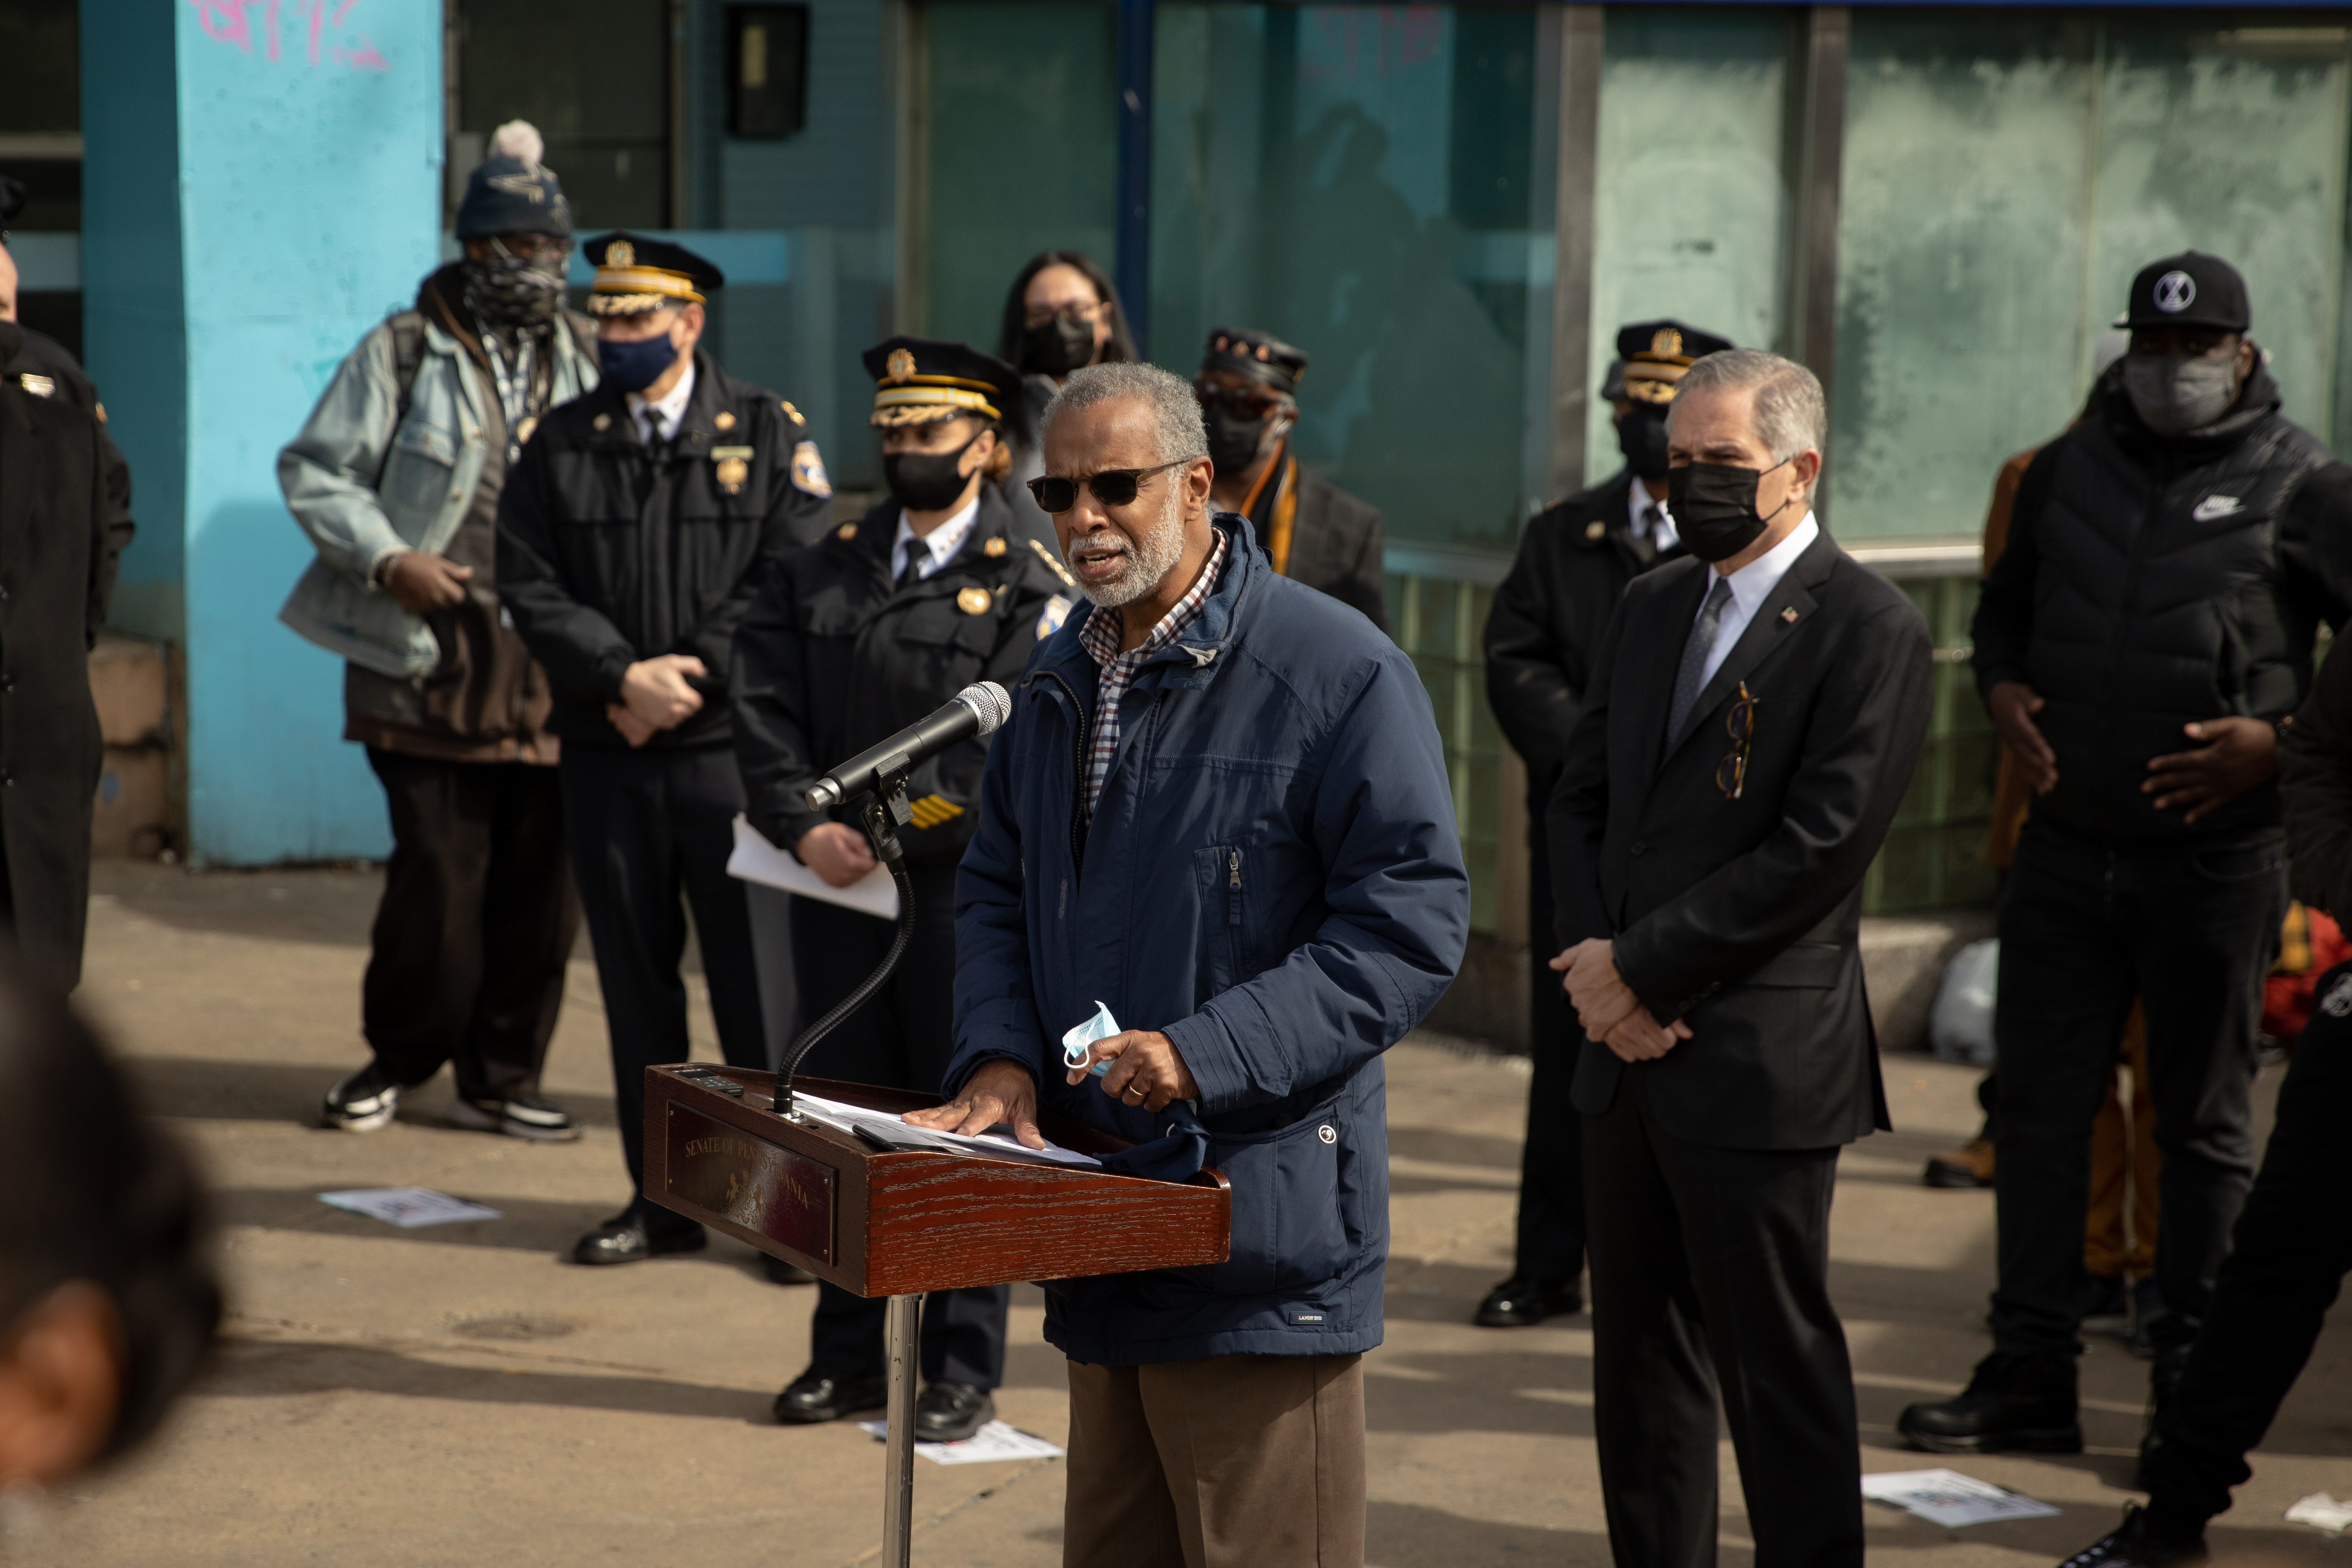 February 26, 2021: City & State Leaders Join Philadelphians in Demanding Safety From Gun Violence